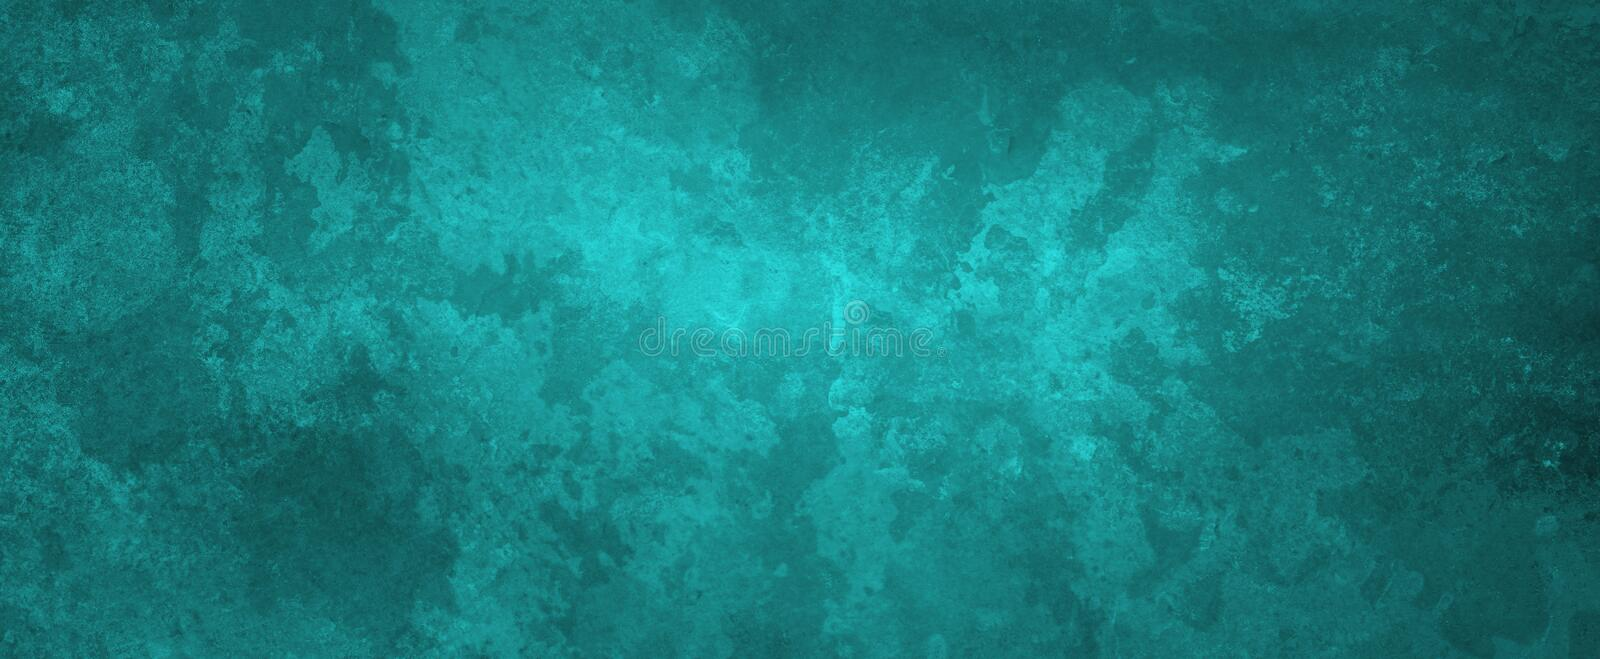 Black and  blue green background with vintage texture and grunge in an elegant classy banner design royalty free stock image